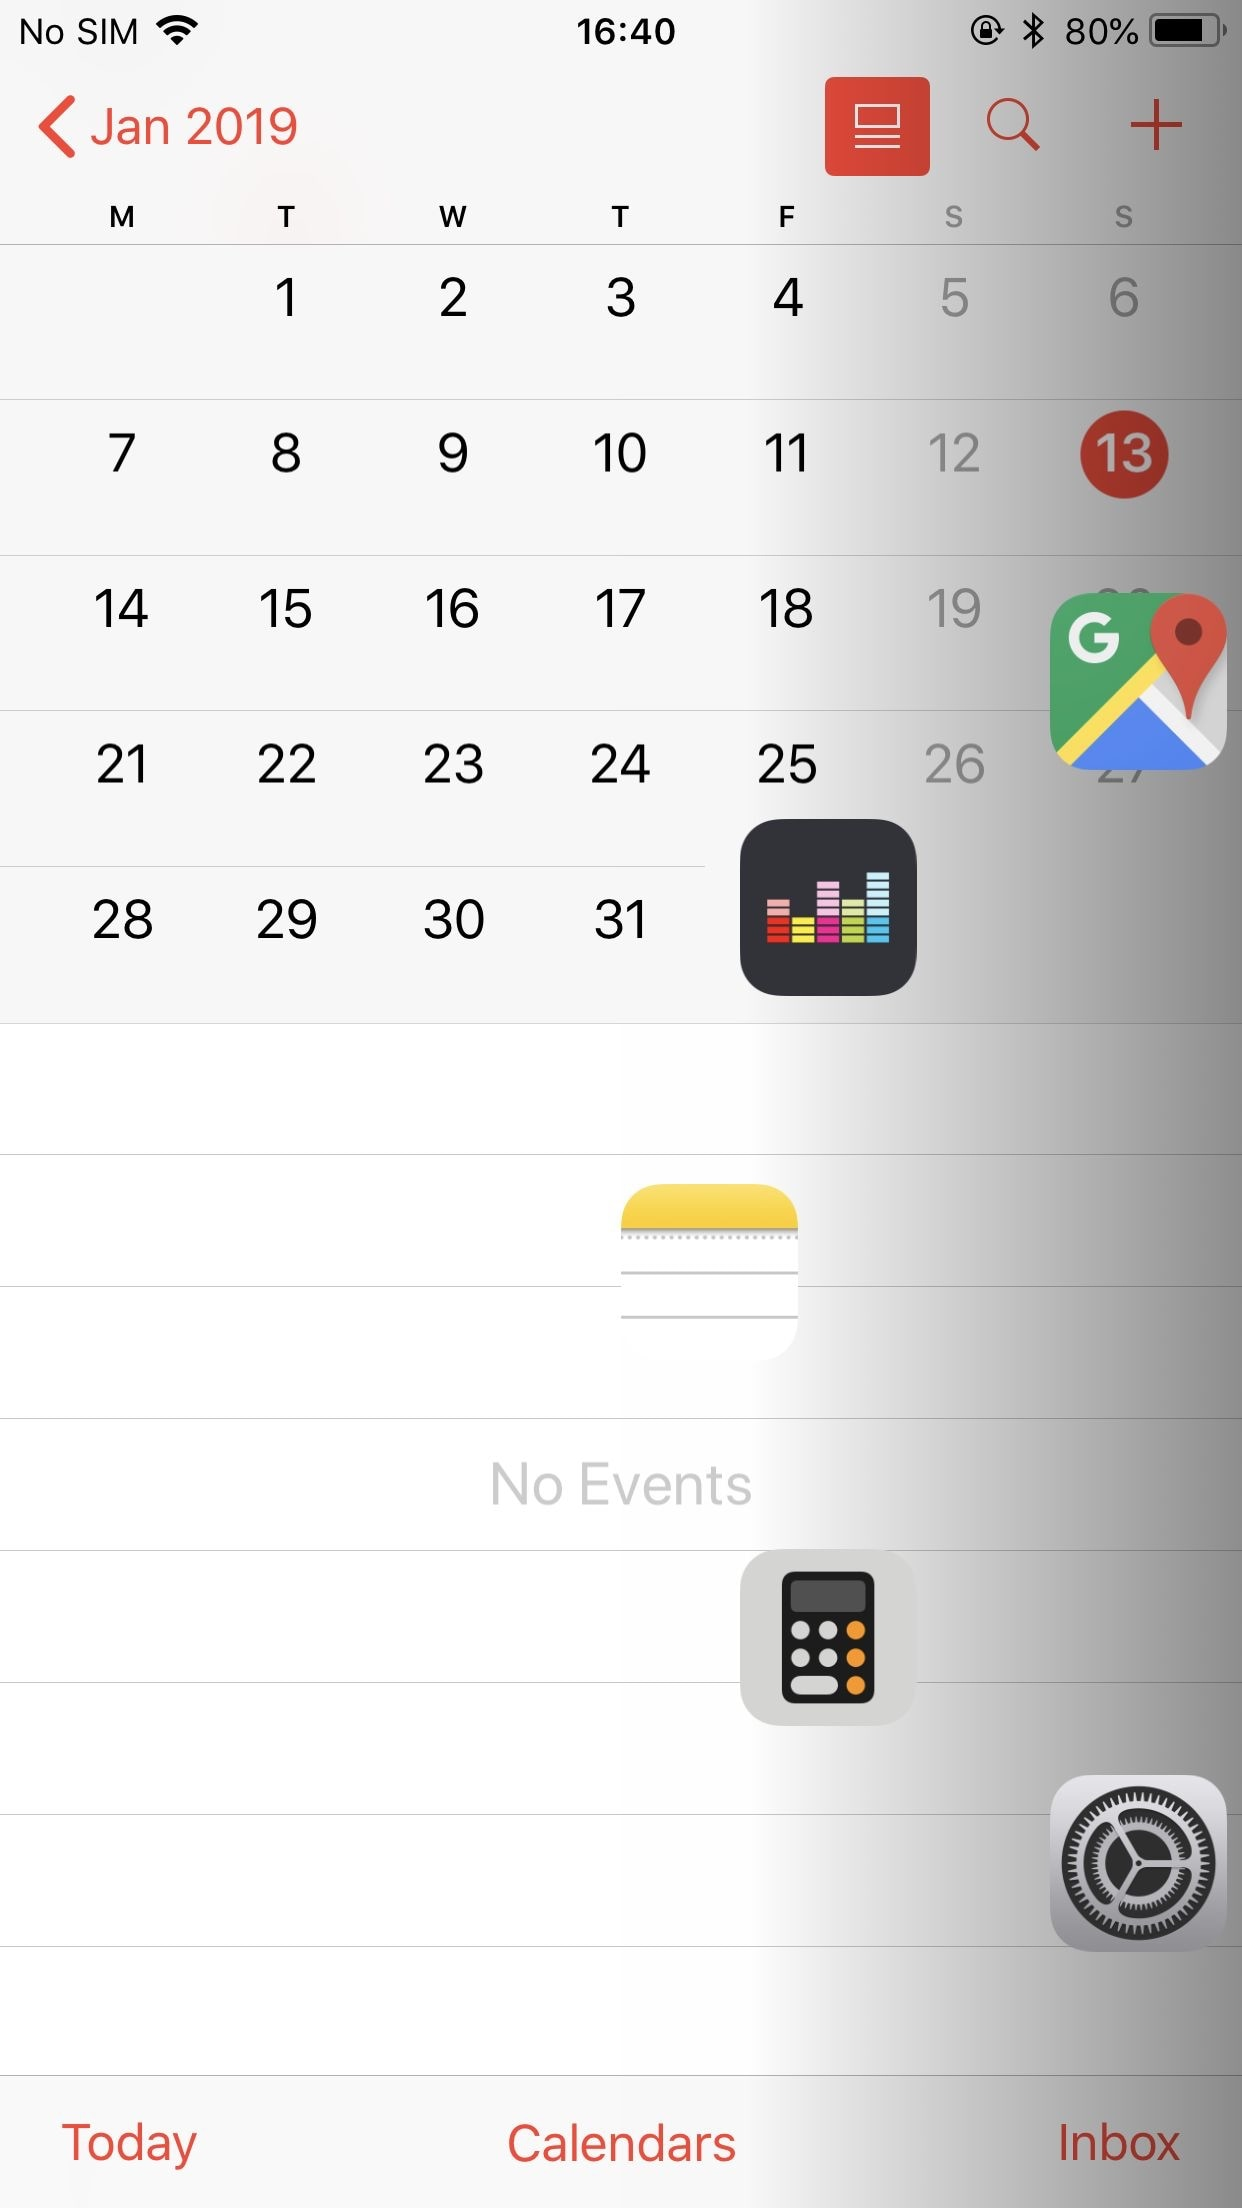 Launchtron is a side-oriented quick app launcher for jailbroken devices